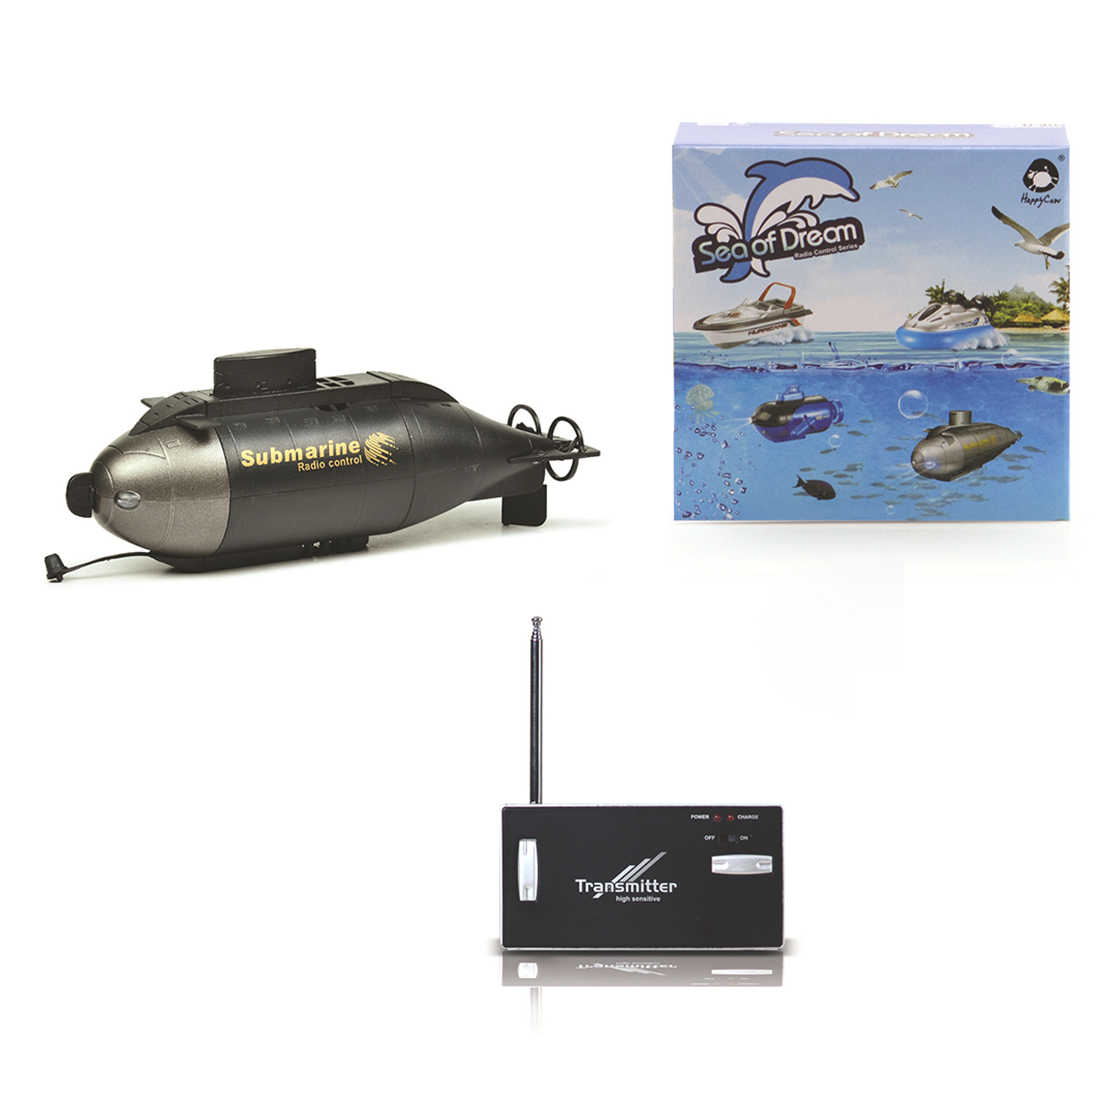 6 Channels Wireless RC Submarine Mini RC Model RC Submarine Diving Electric Remote Control Toys - Black